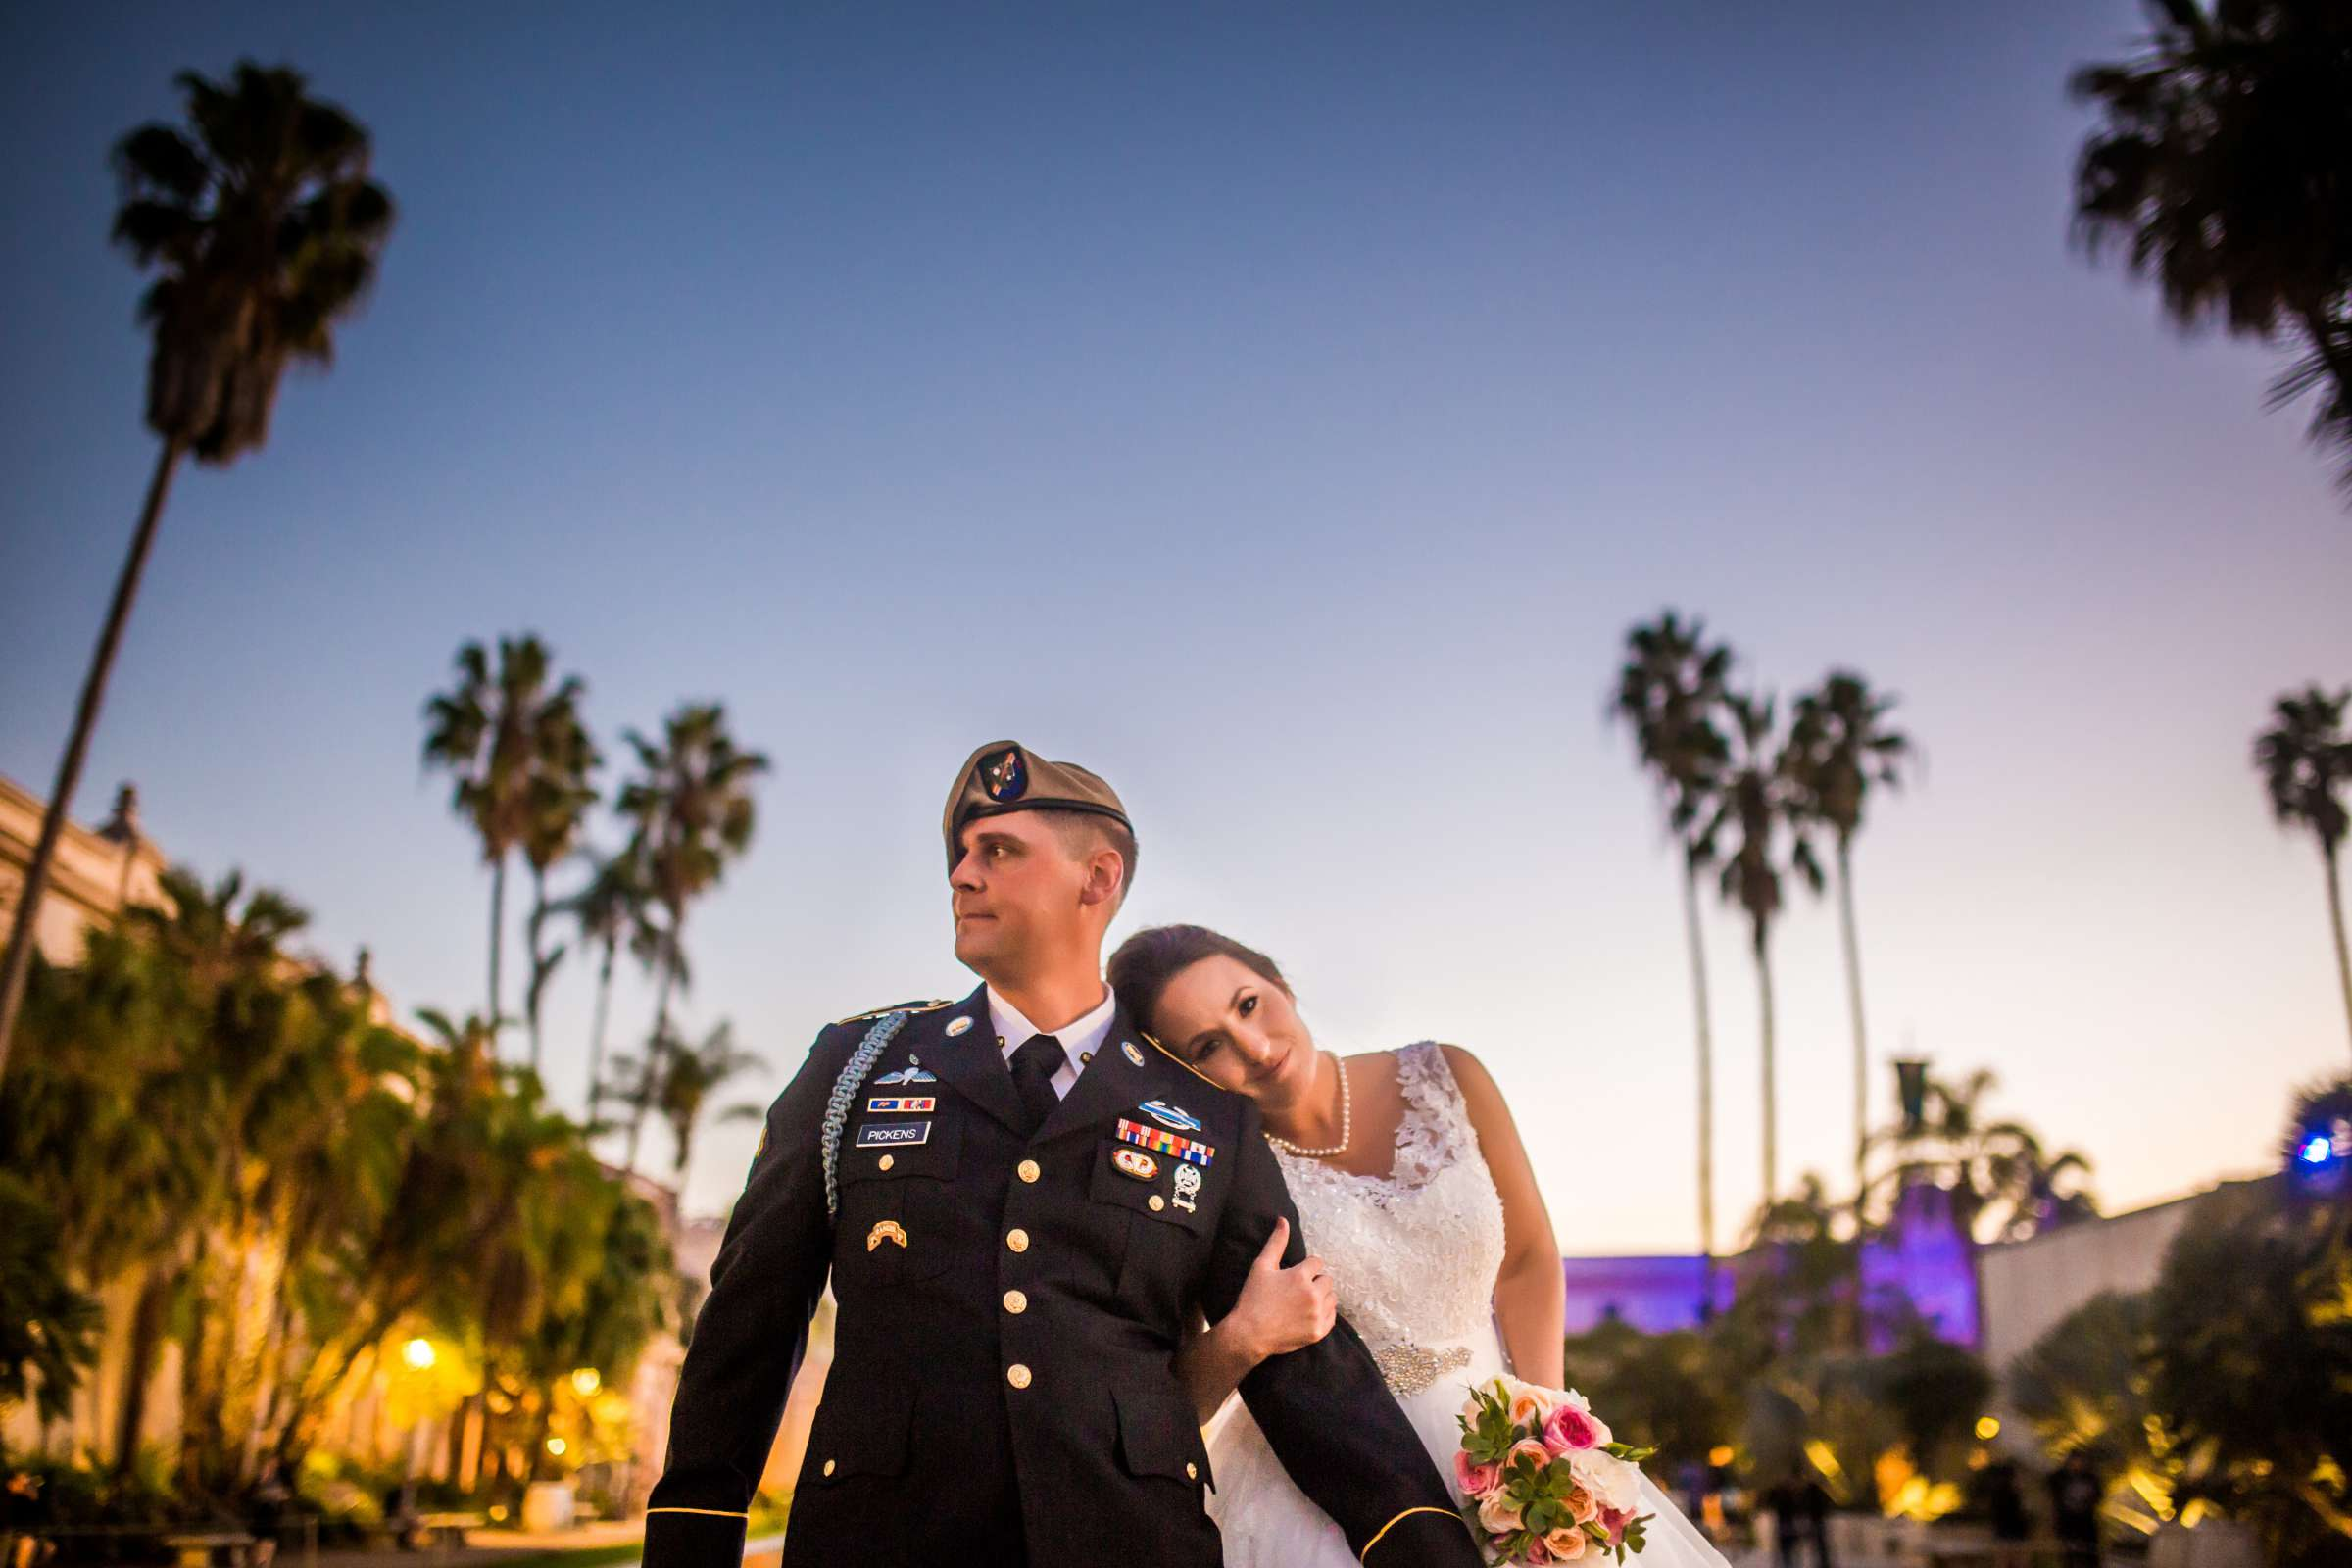 San Diego Courthouse Wedding, Jonell and Jonah Wedding Photo #290359 by True Photography